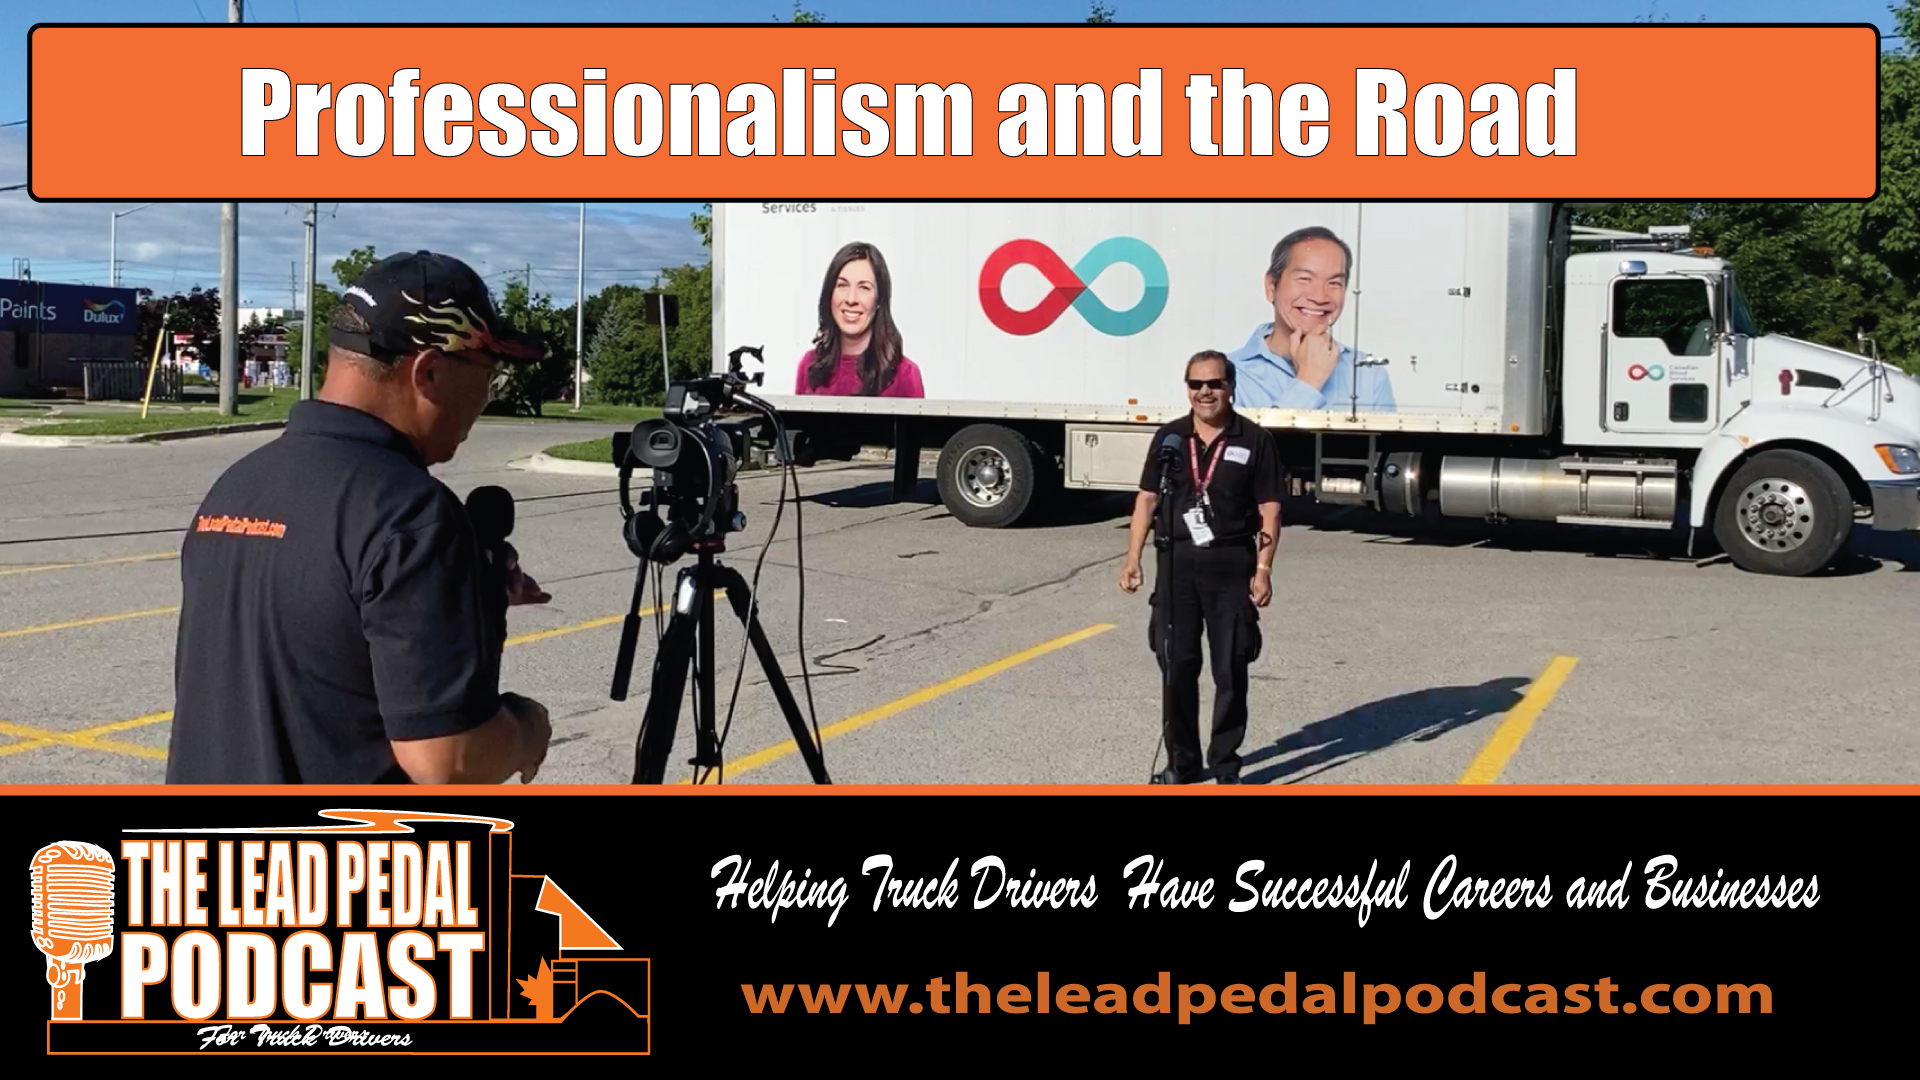 LP532 Tips from Professionals Drivers on Having a Successful Career in Trucking